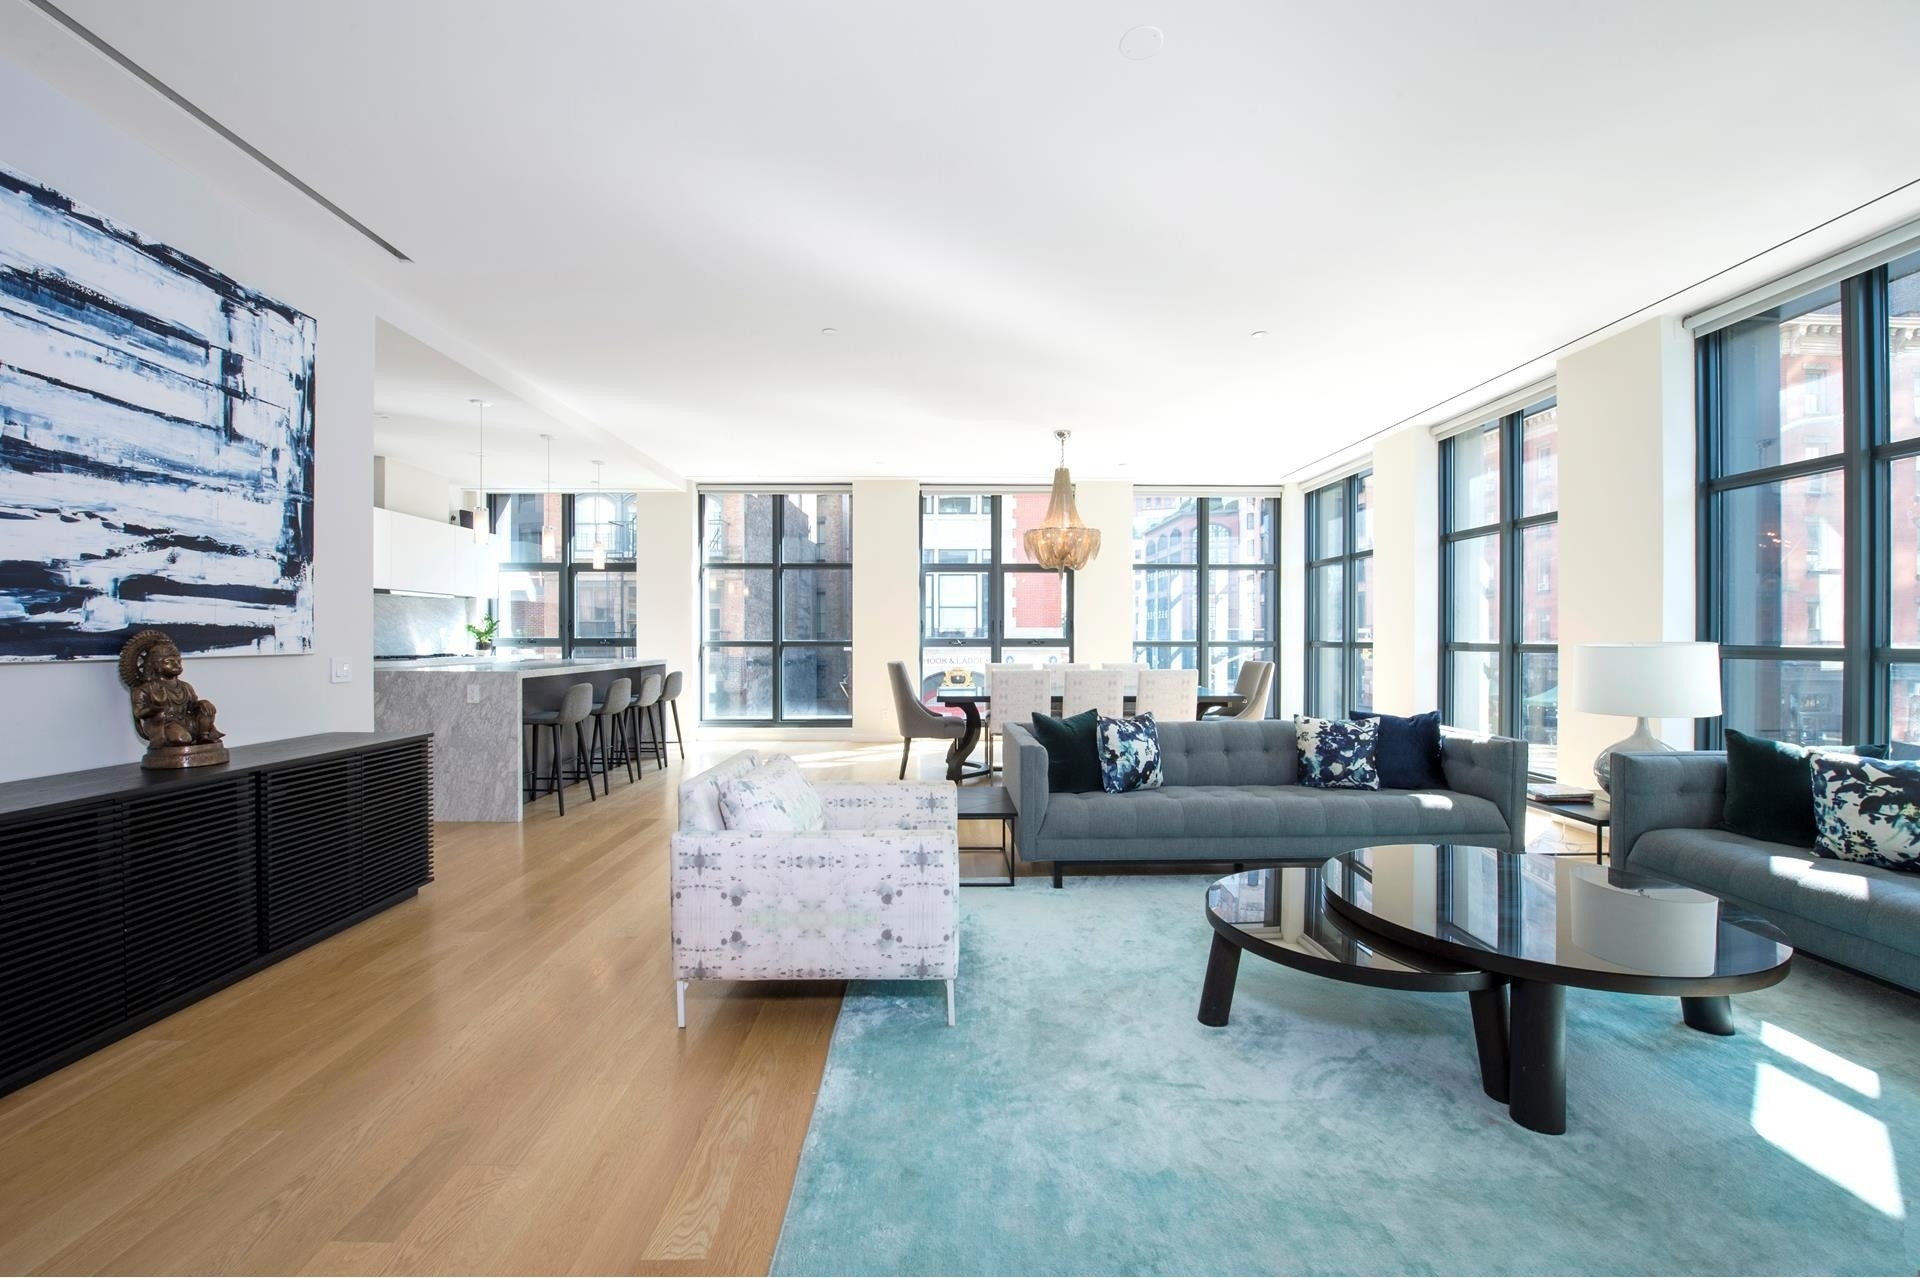 Property at 11 North Moore St, 2C TriBeCa, New York, NY 10013